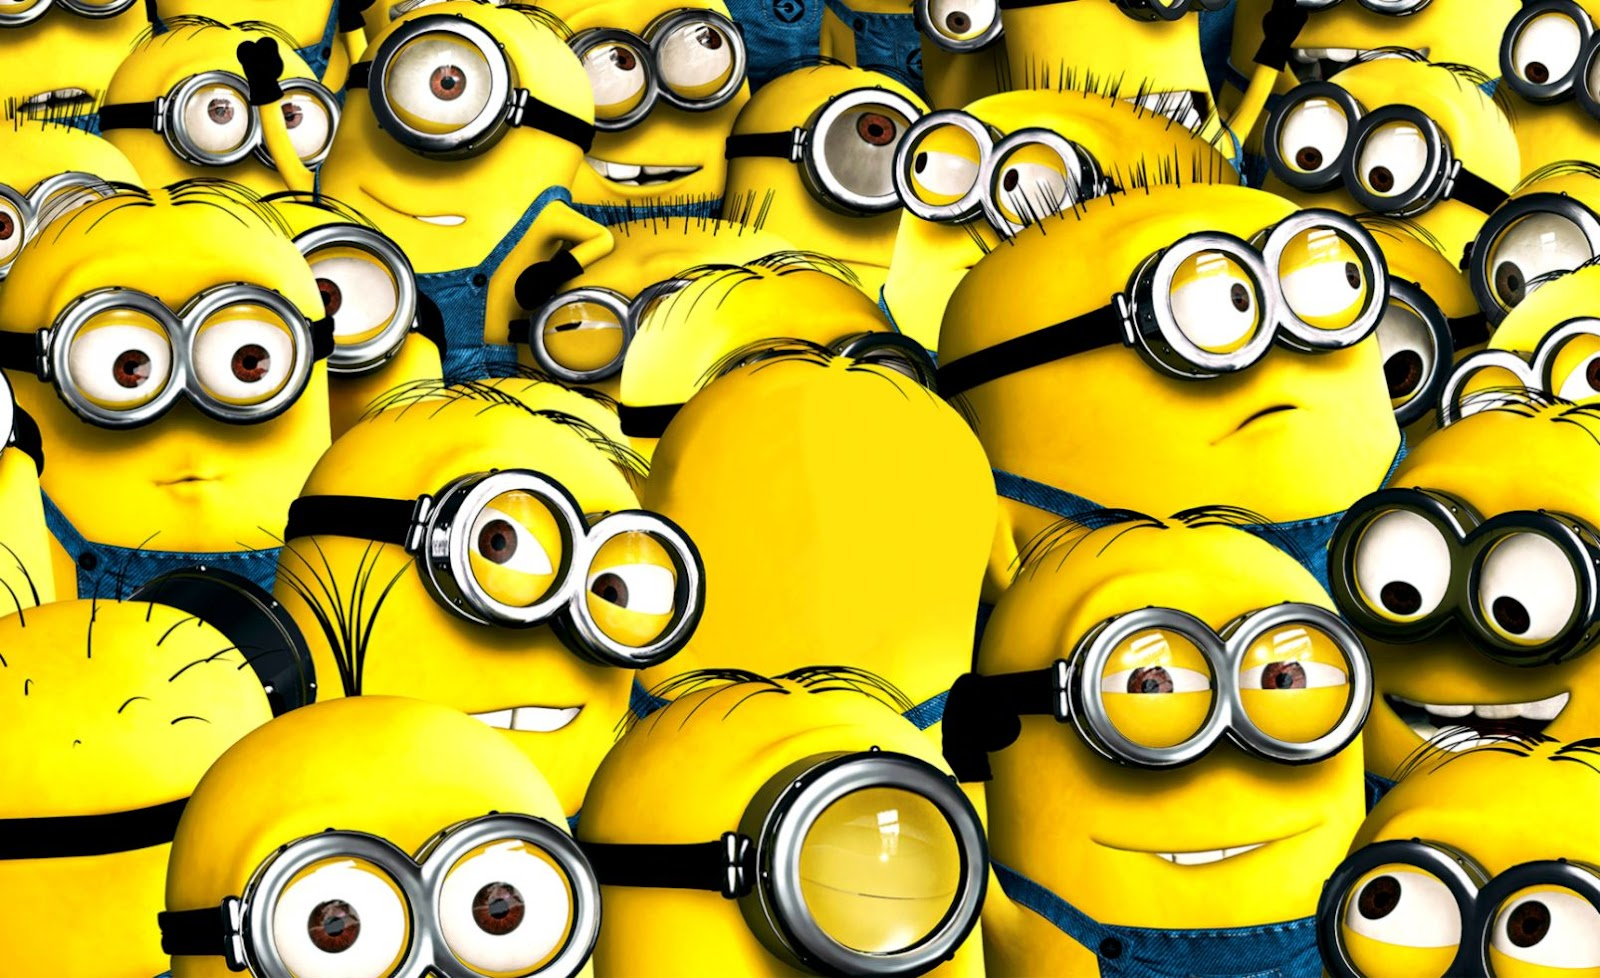 minions 3d movie wallpaper | image wallpaper collections